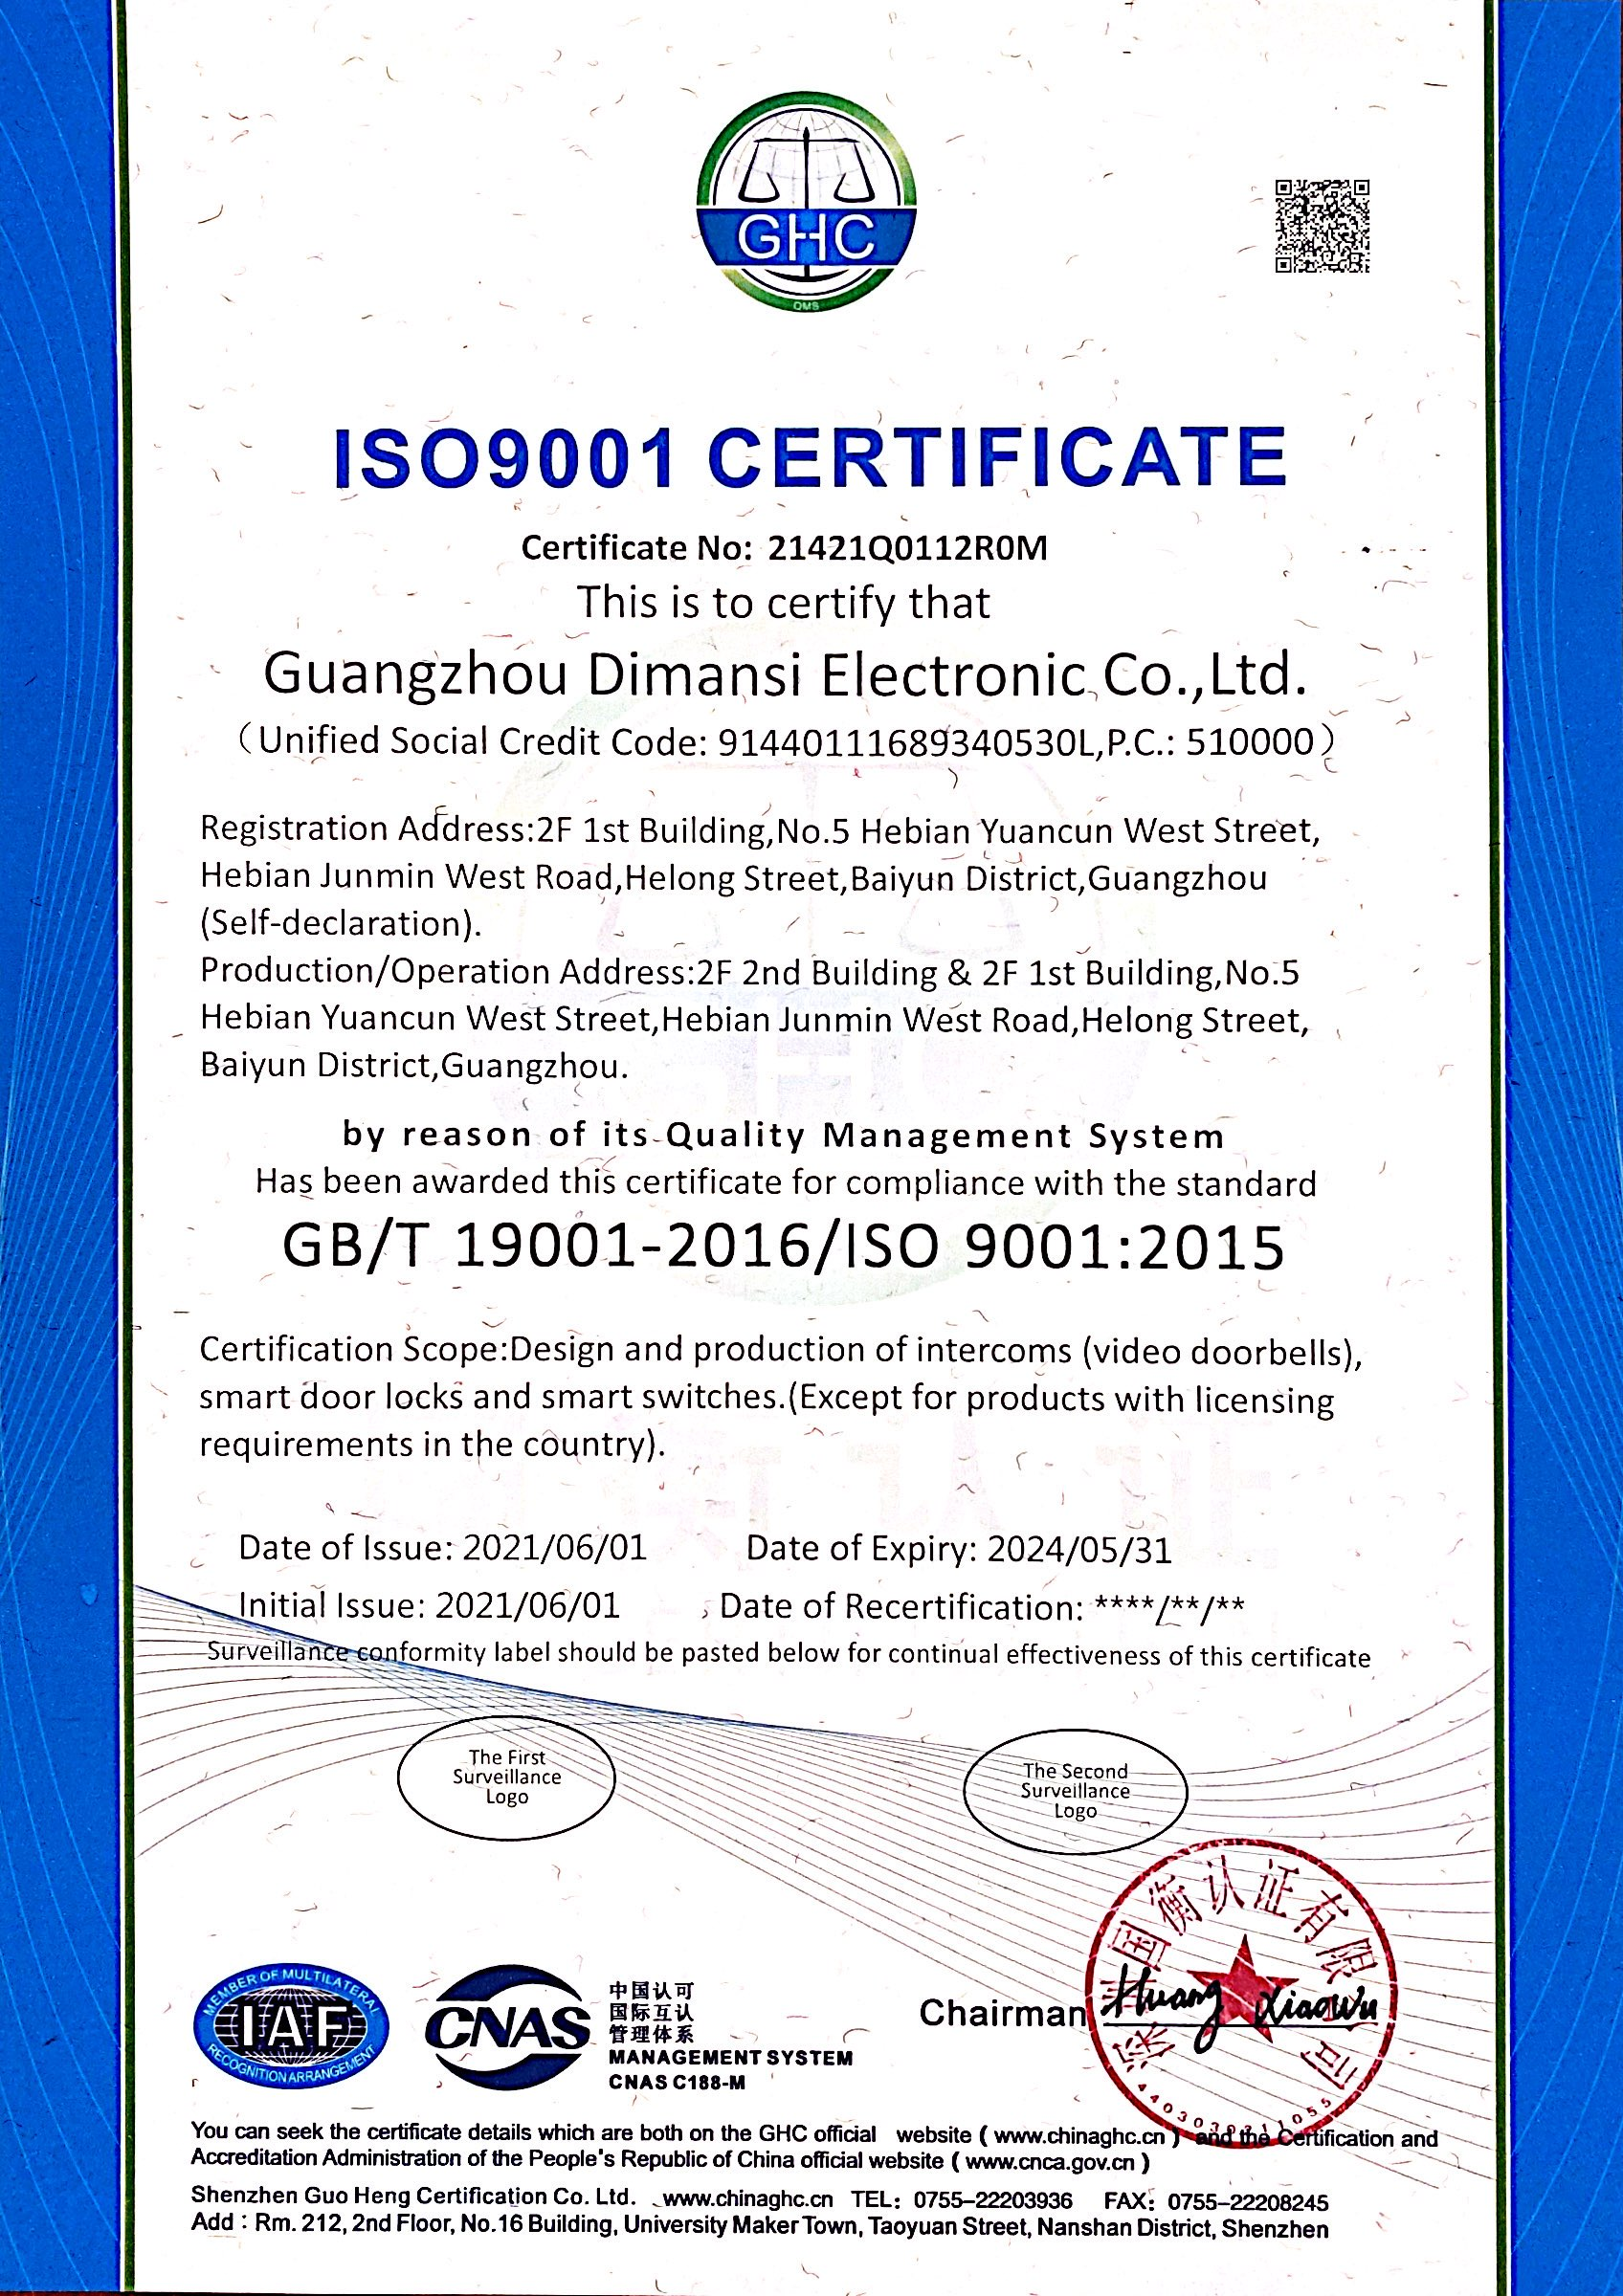 ISO 9001 Certificate Updated